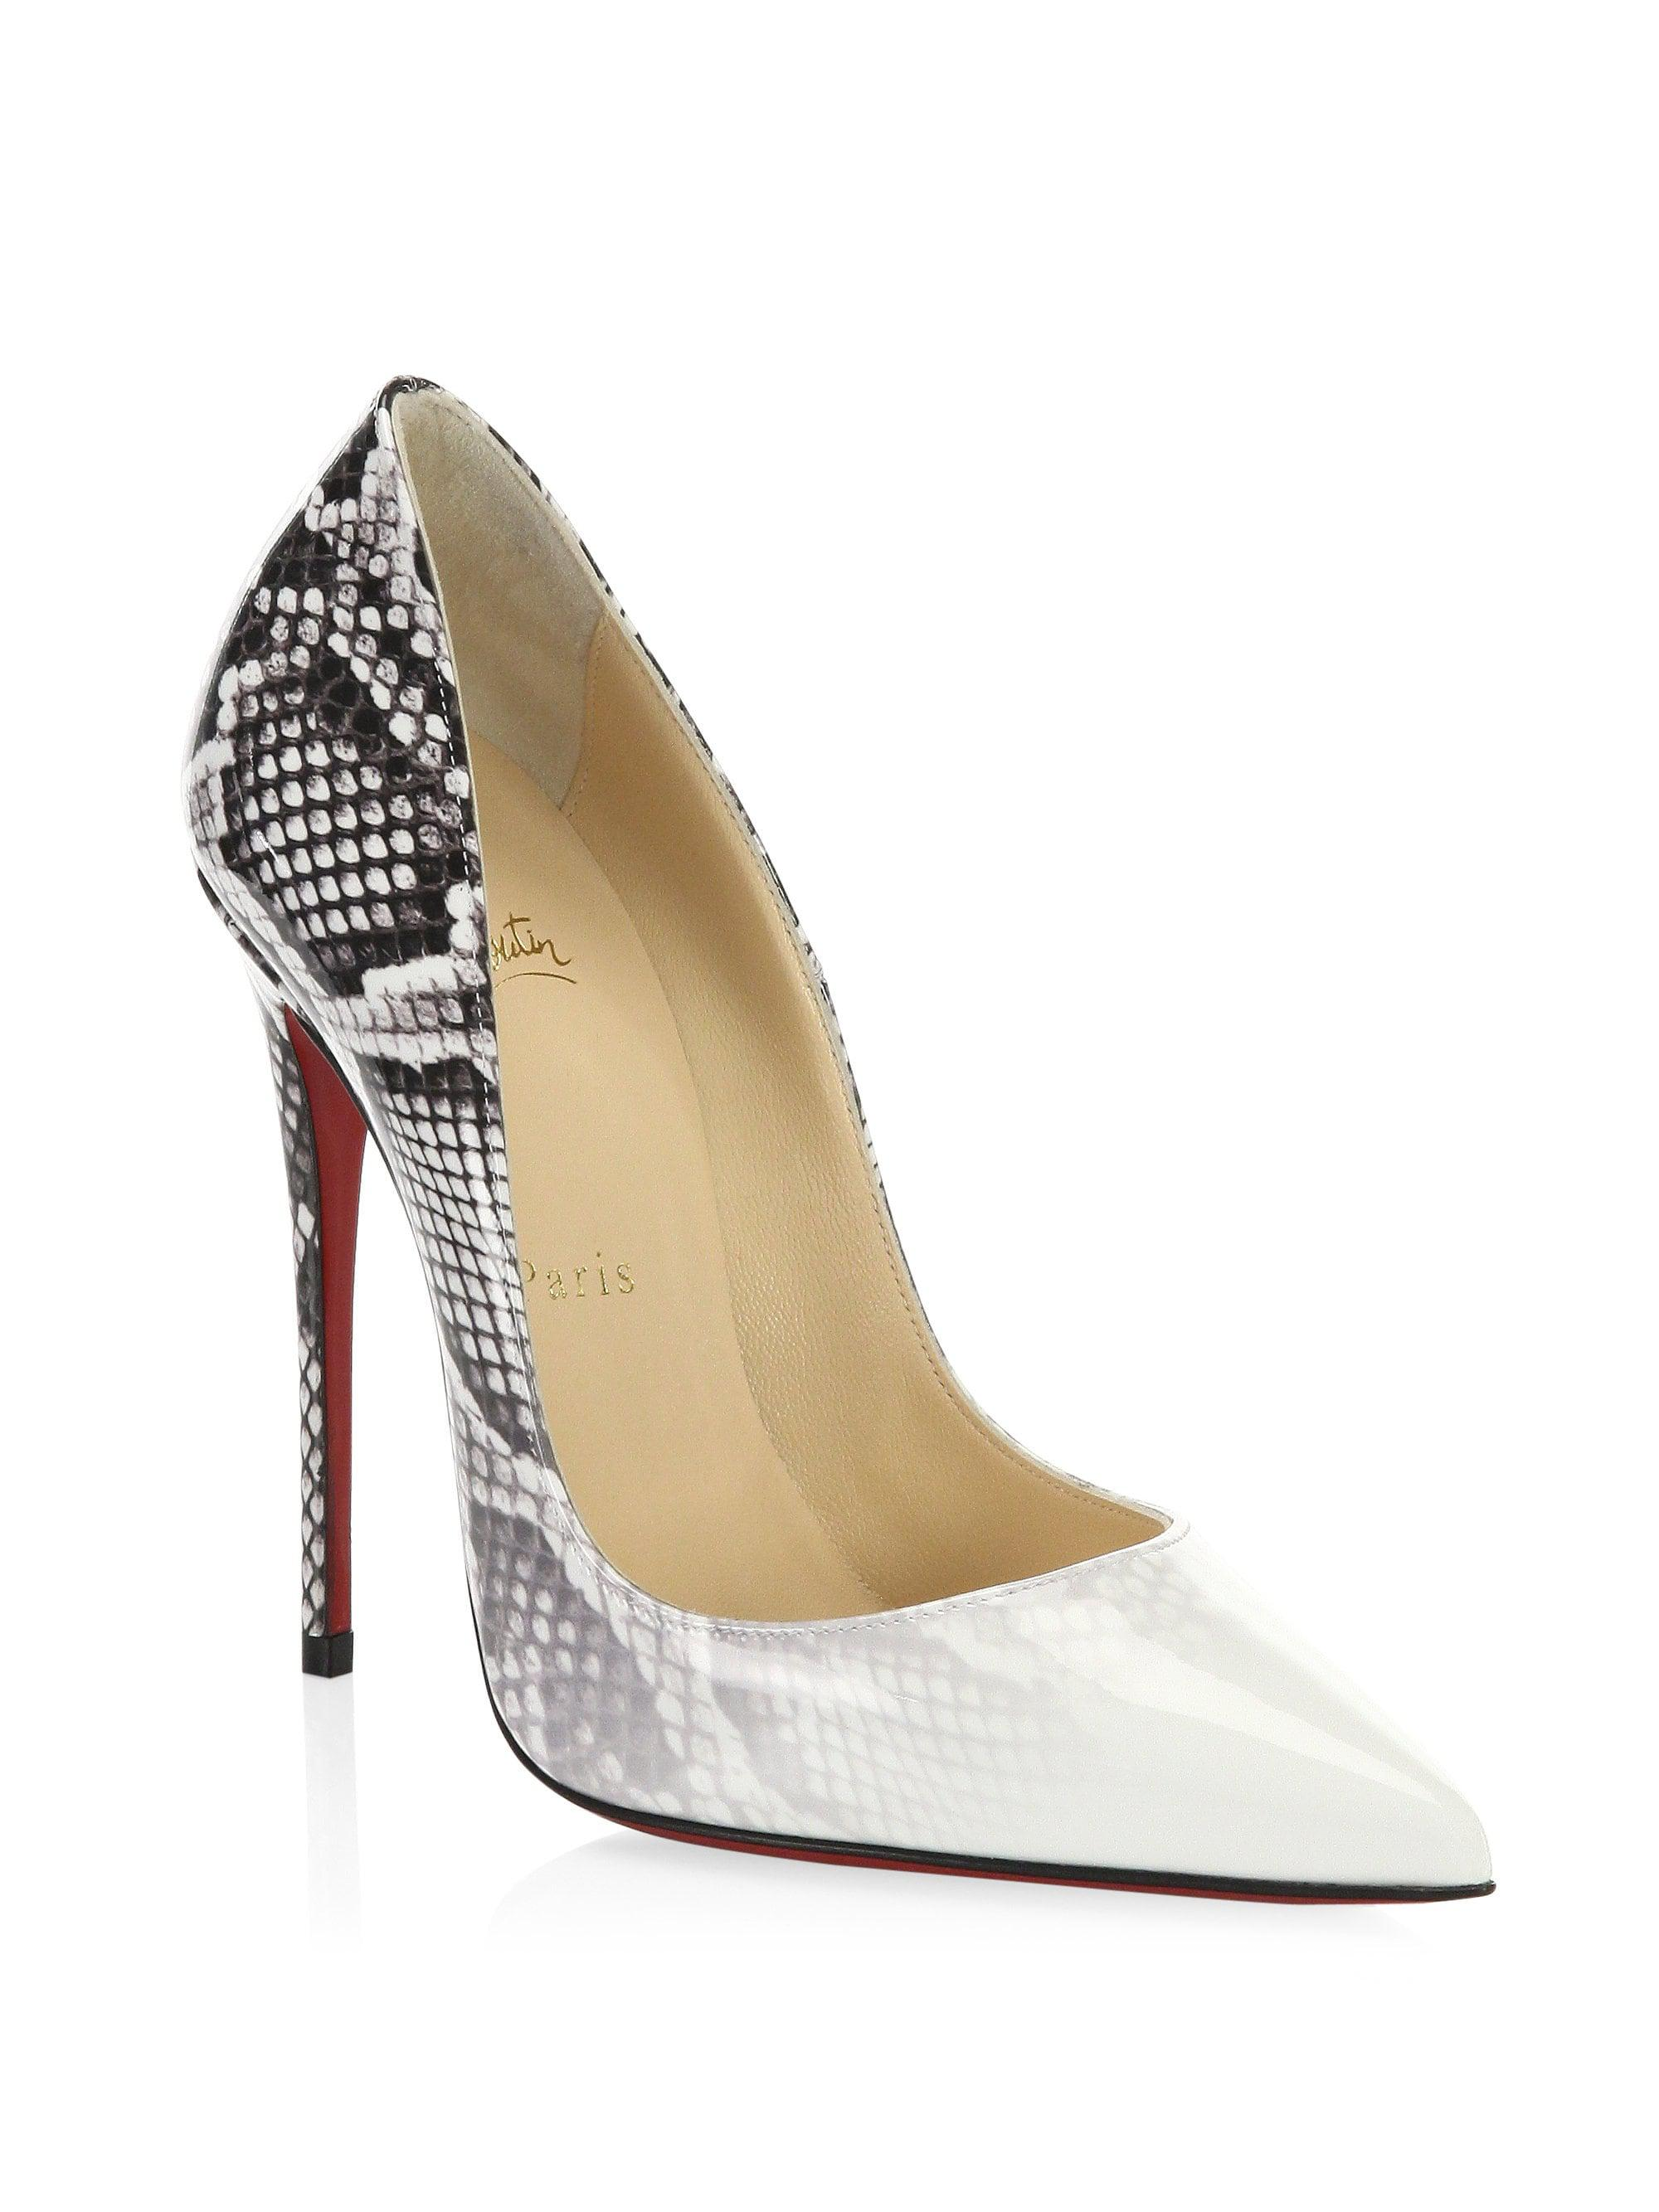 buy popular 0493a fc77b Christian Louboutin White So Kate Patent Leather Heels